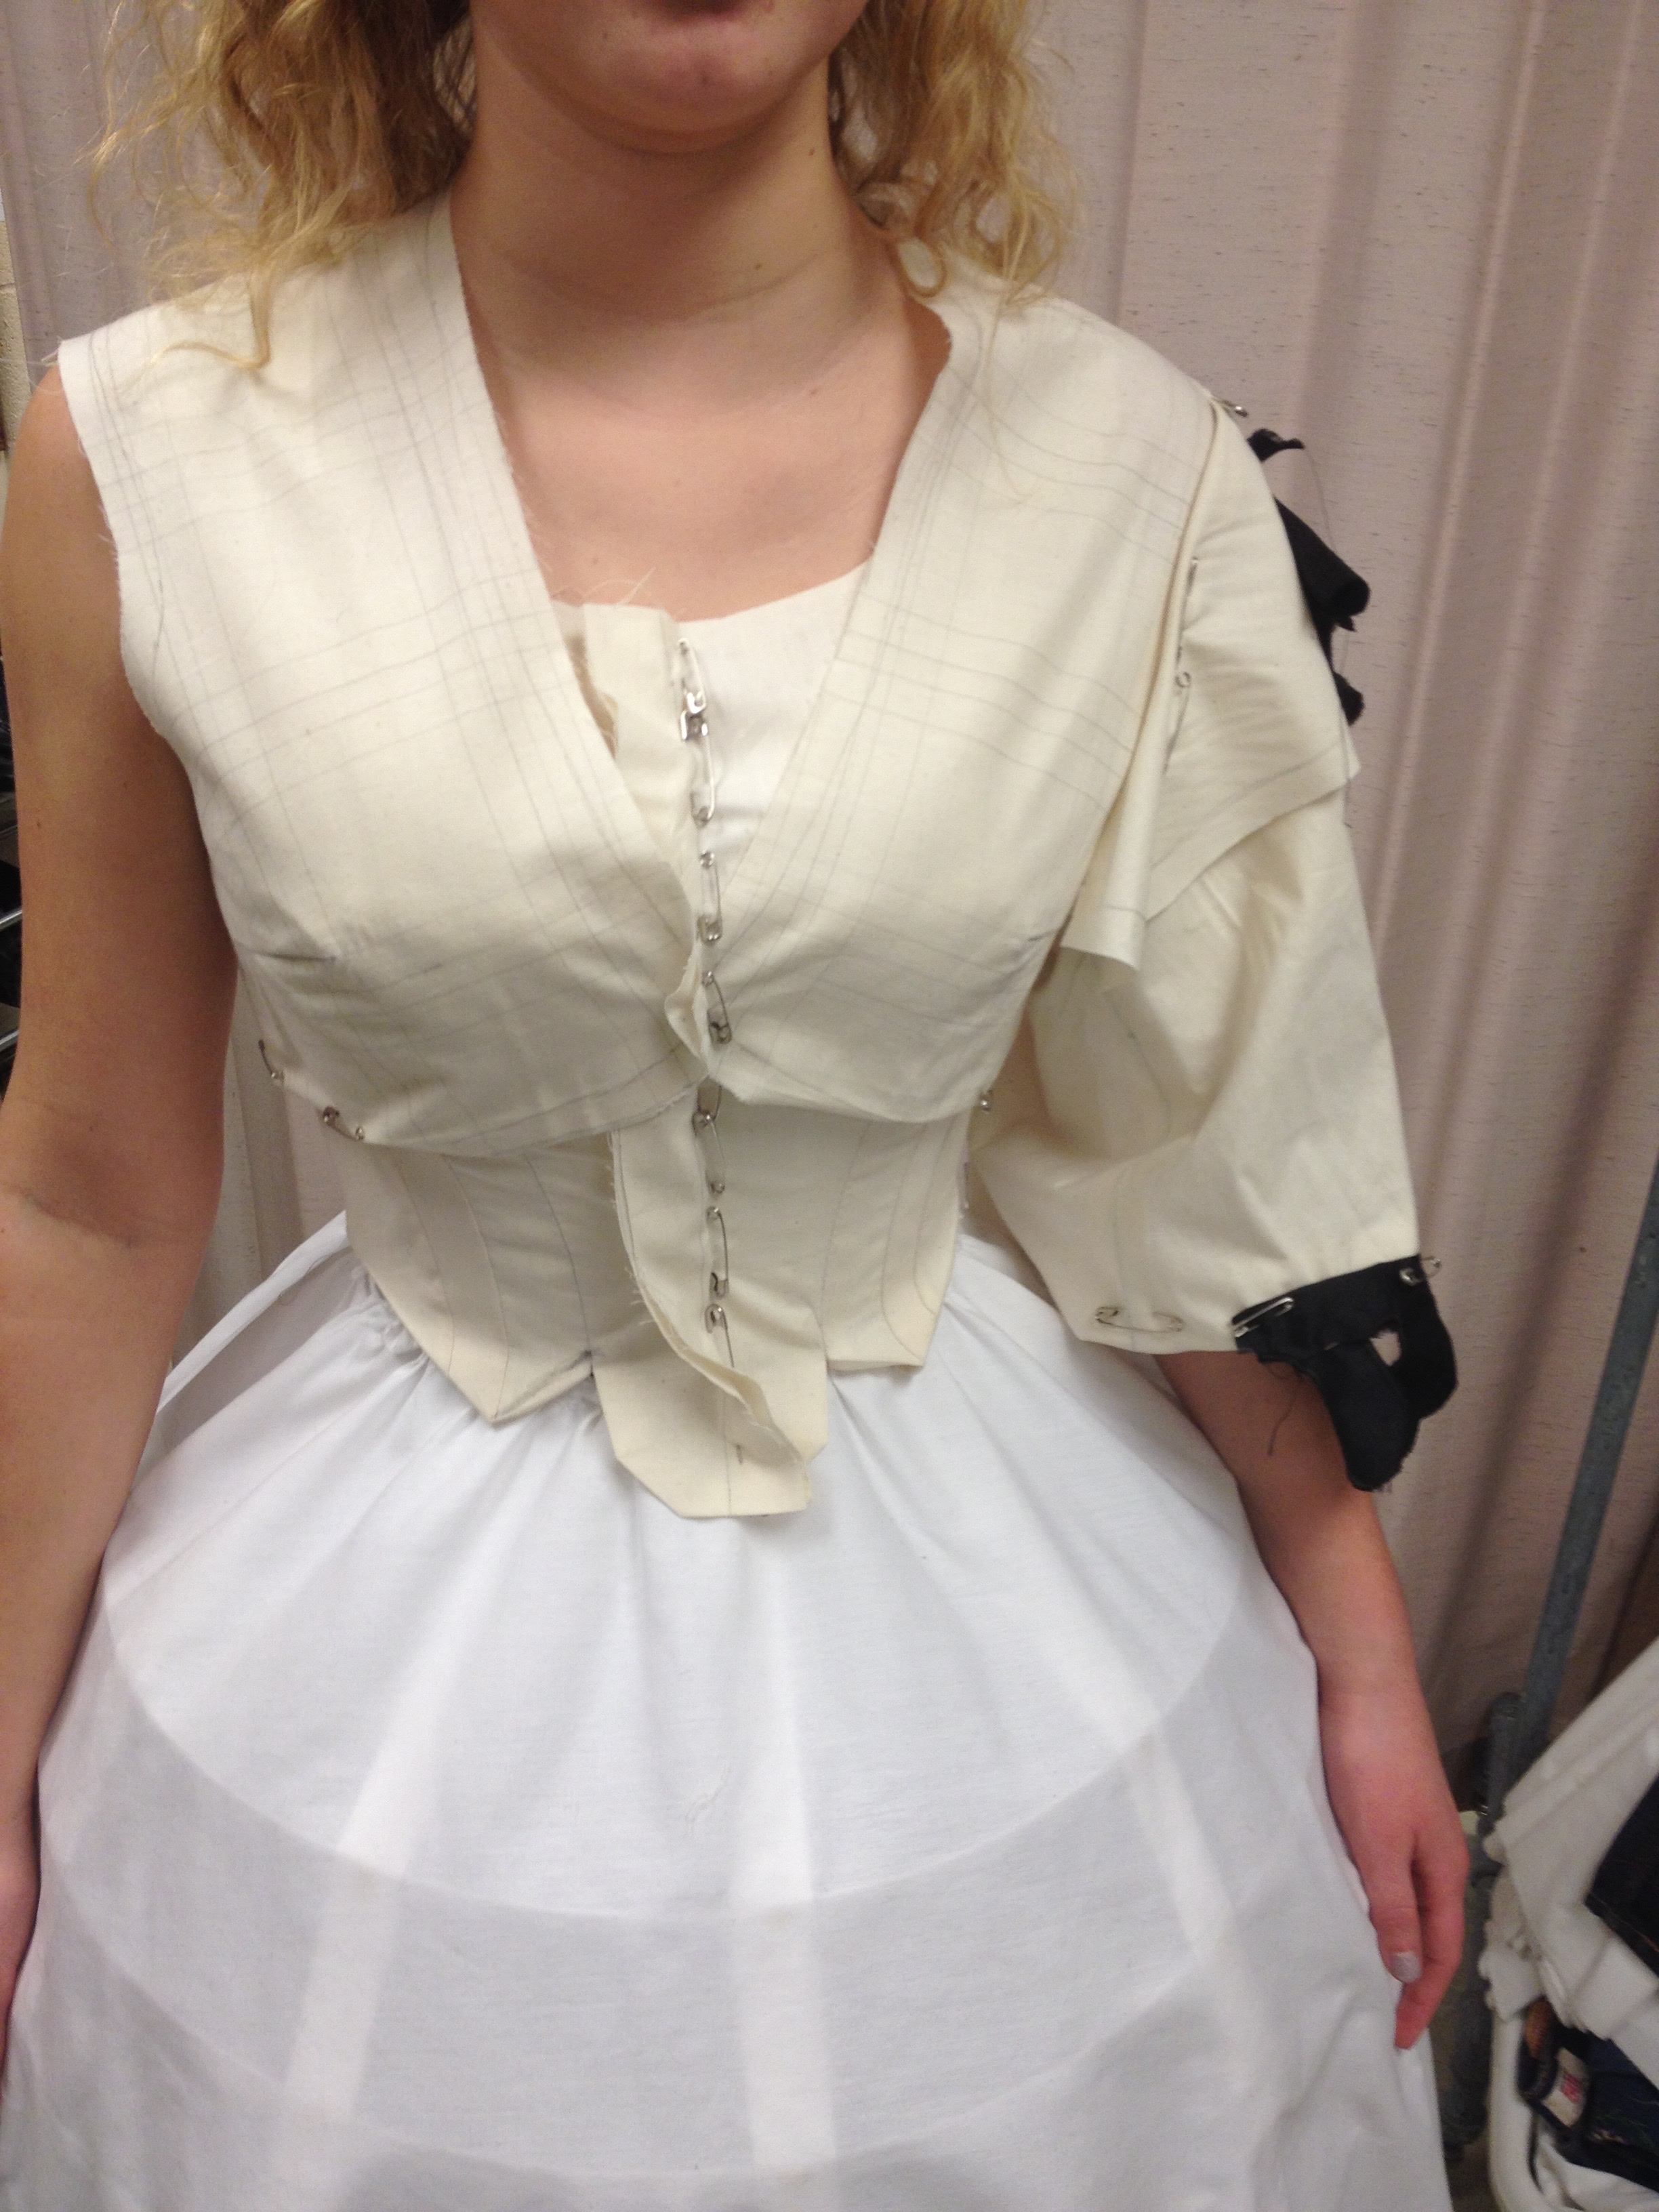 Mock-up of Bodice and Jacket